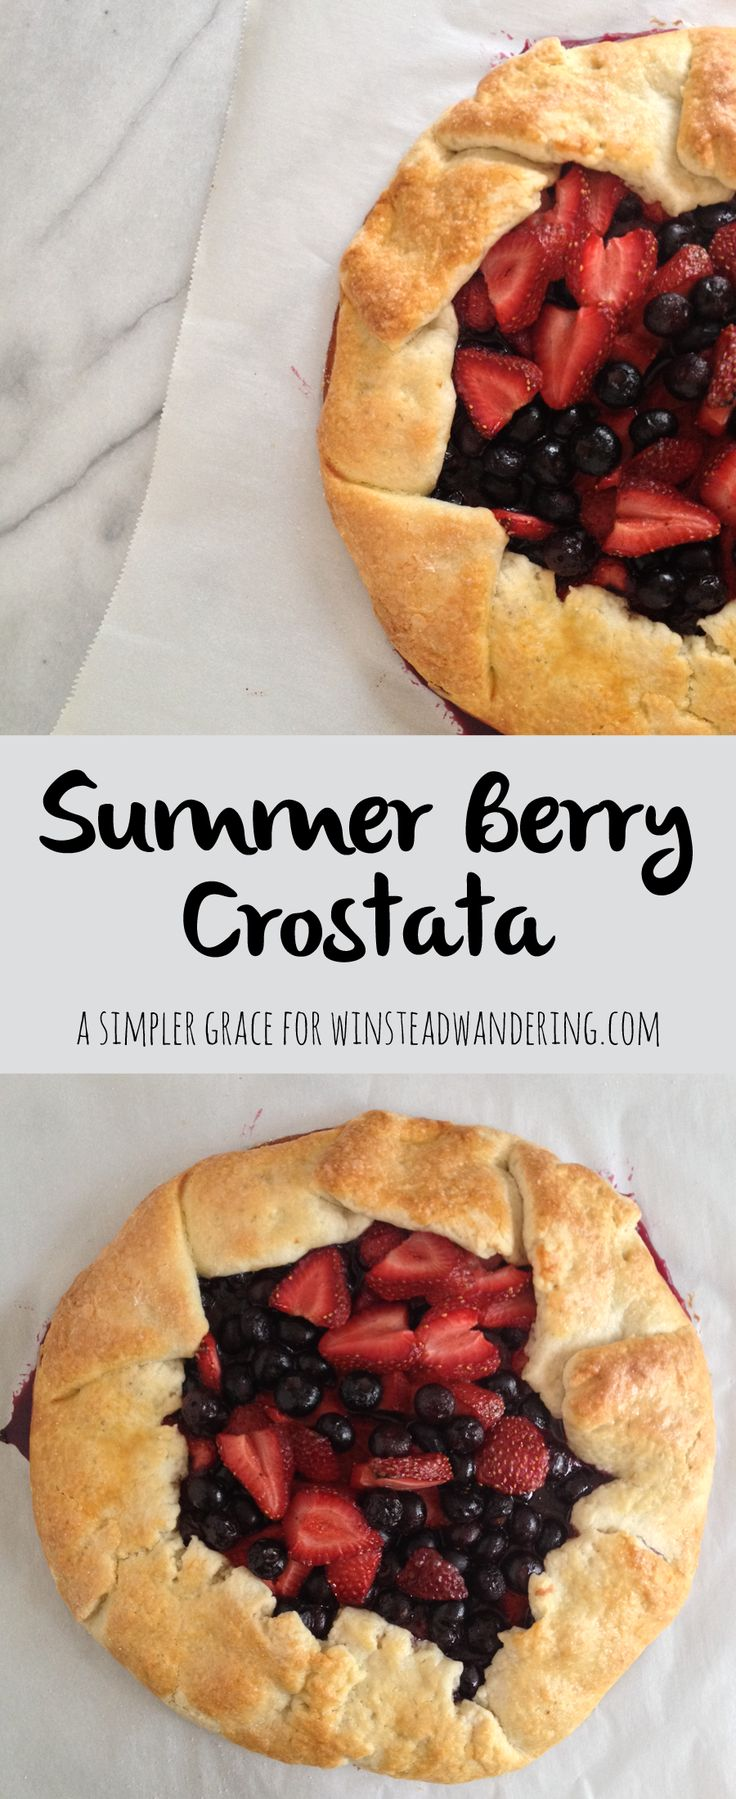 This summer berry crostata recipe is a rustic homemade crust packed with juicy strawberries, plump blueberries, and the perfect complement of spices.